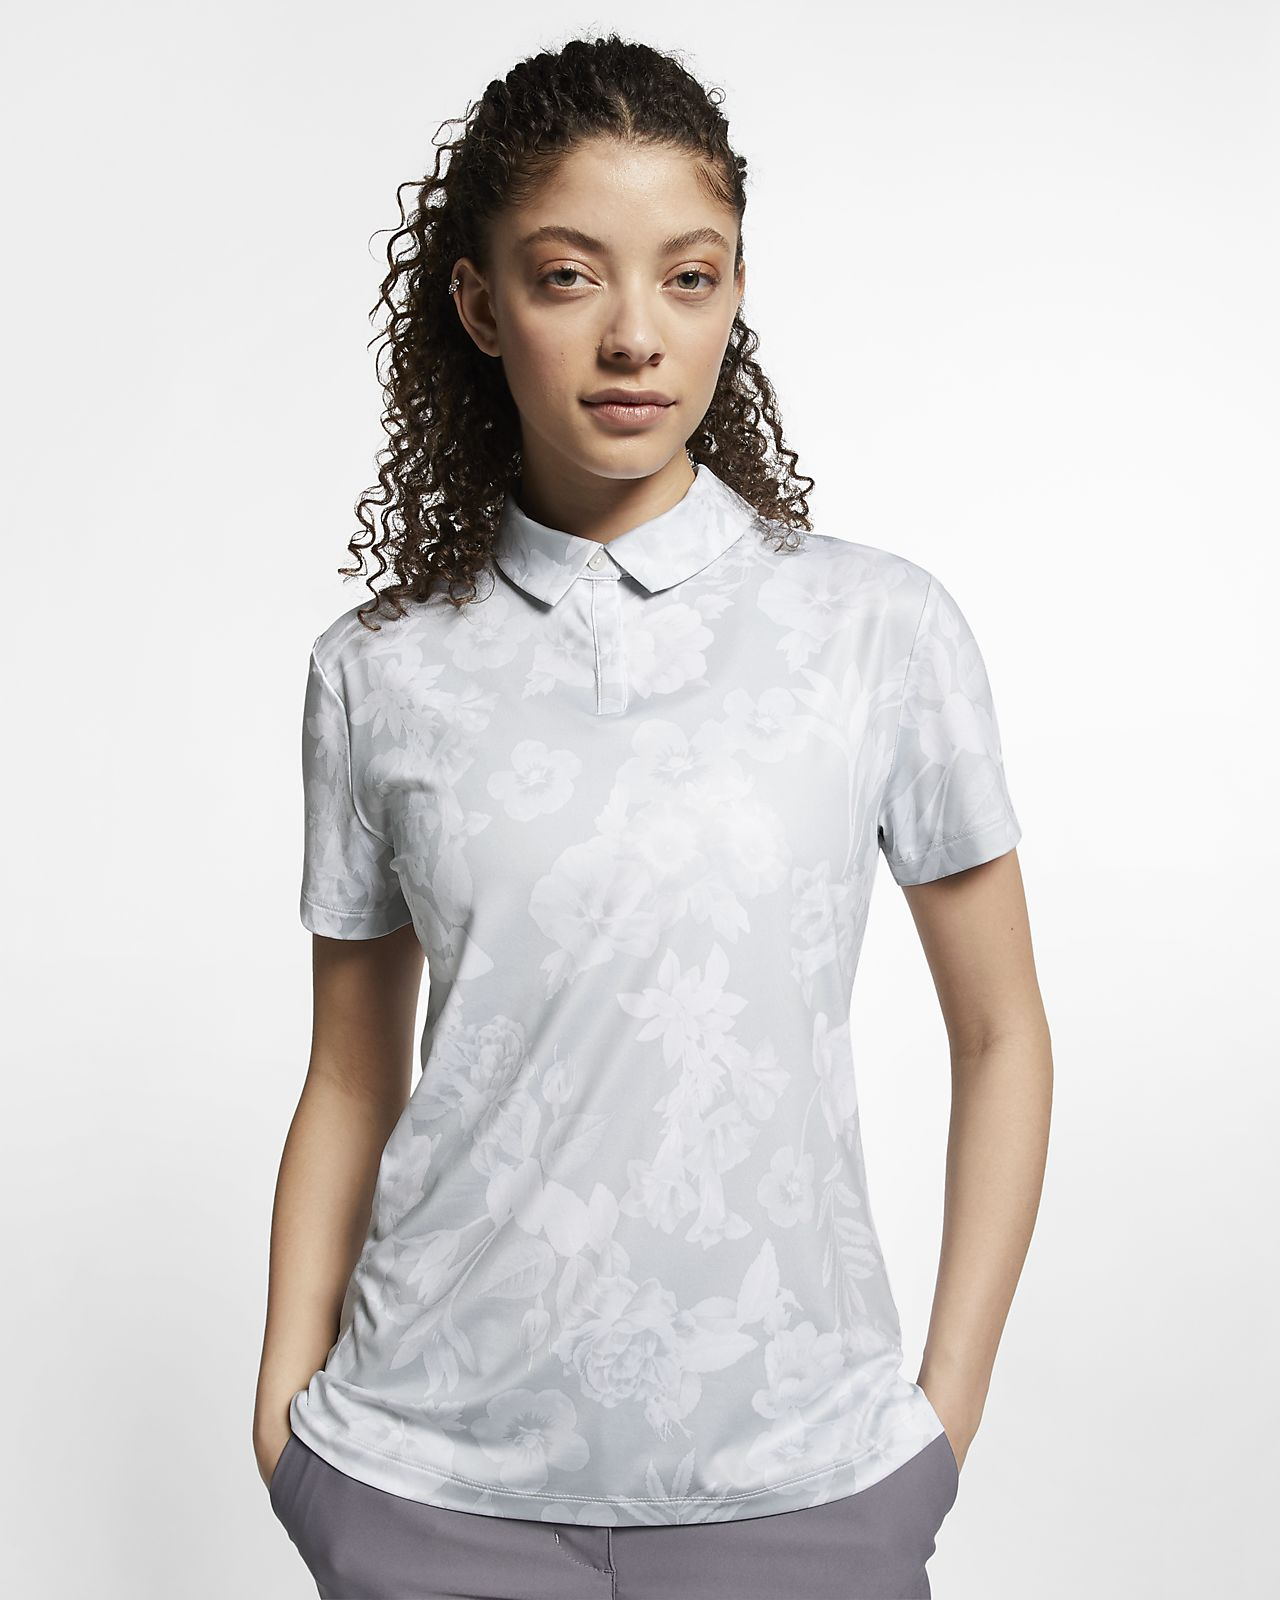 Nike Dri-FIT UV Women's Printed Golf Polo